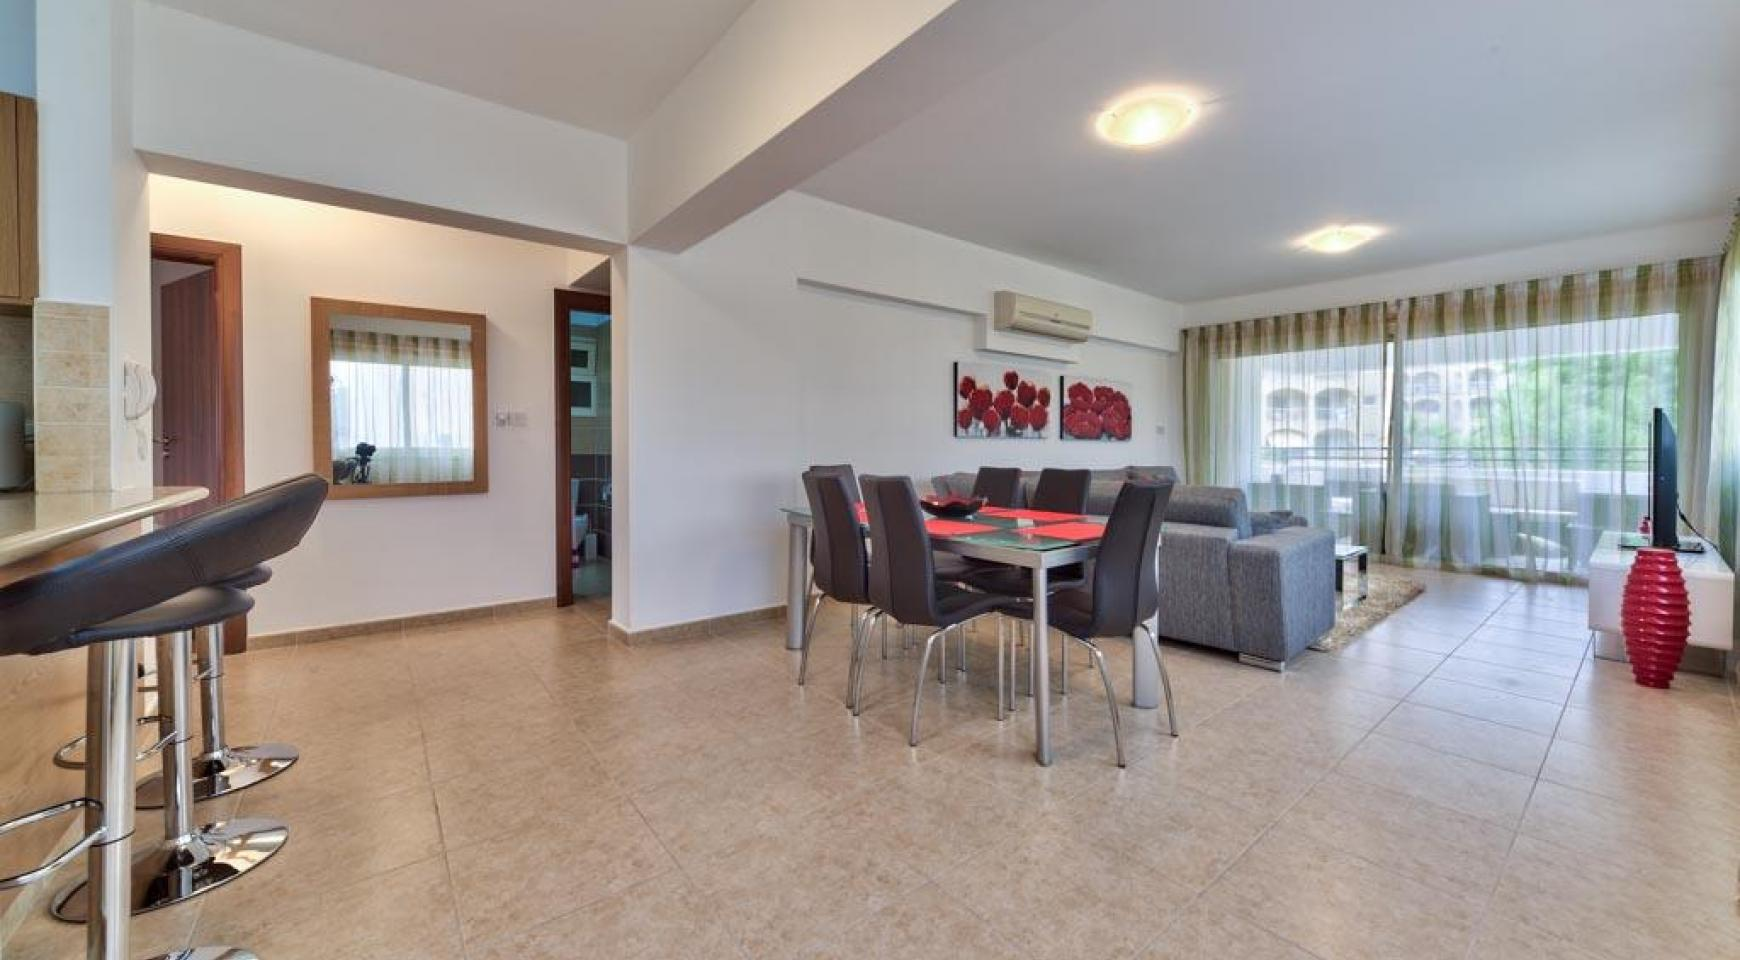 3 Bedroom Apartment in the Centre of the Tourist Area - 3